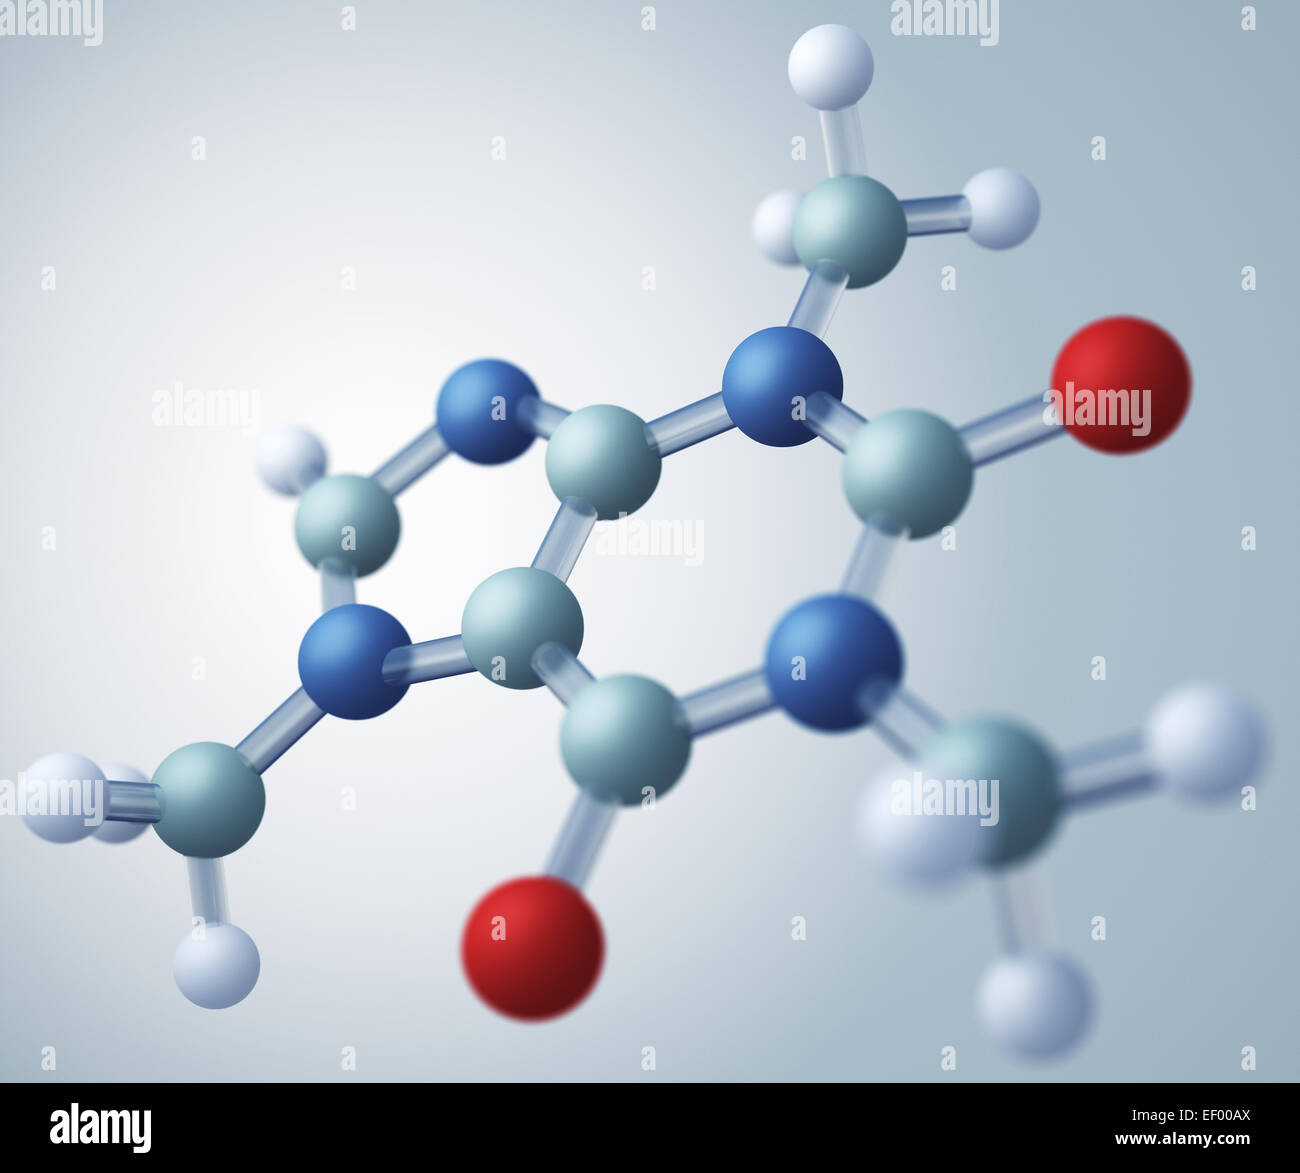 Caffeine molecular model. Caffeine is an alkaloid that acts as a central nervous system stimulant - Stock Image